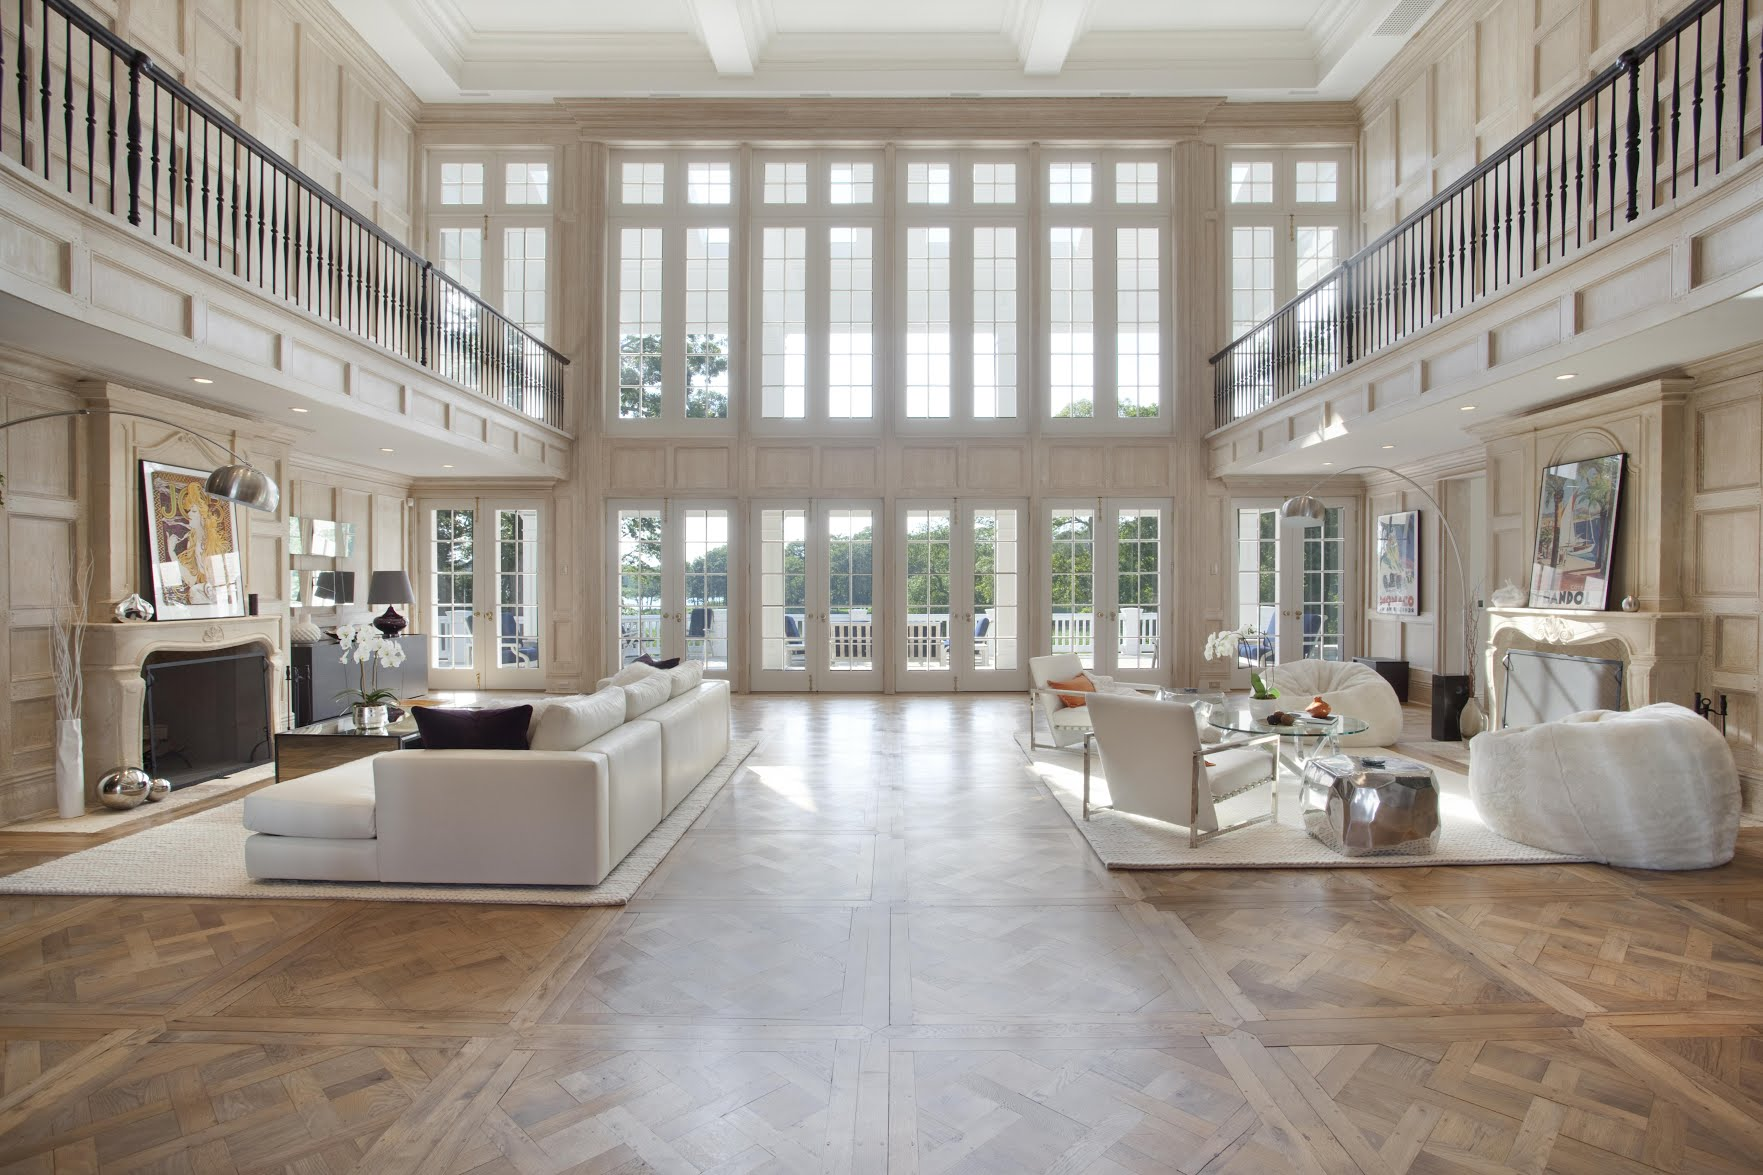 The seven bed property features a stunning hall with dual fireplaces